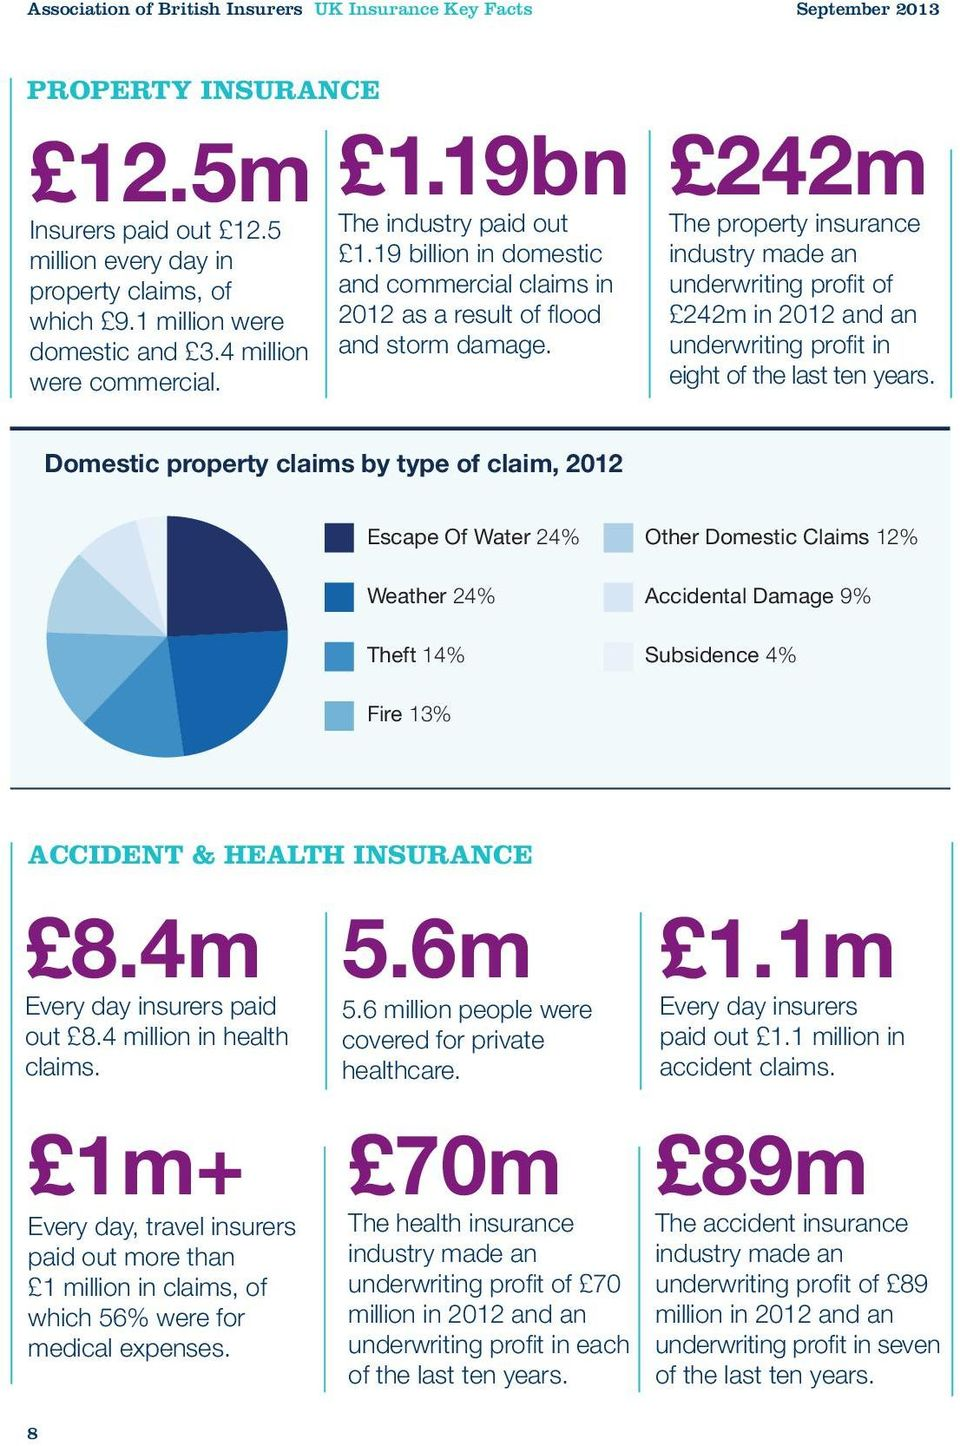 19bn 242m The property insurance industry made an underwriting profit of 242m in 2012 and an underwriting profit in eight of the last ten years.